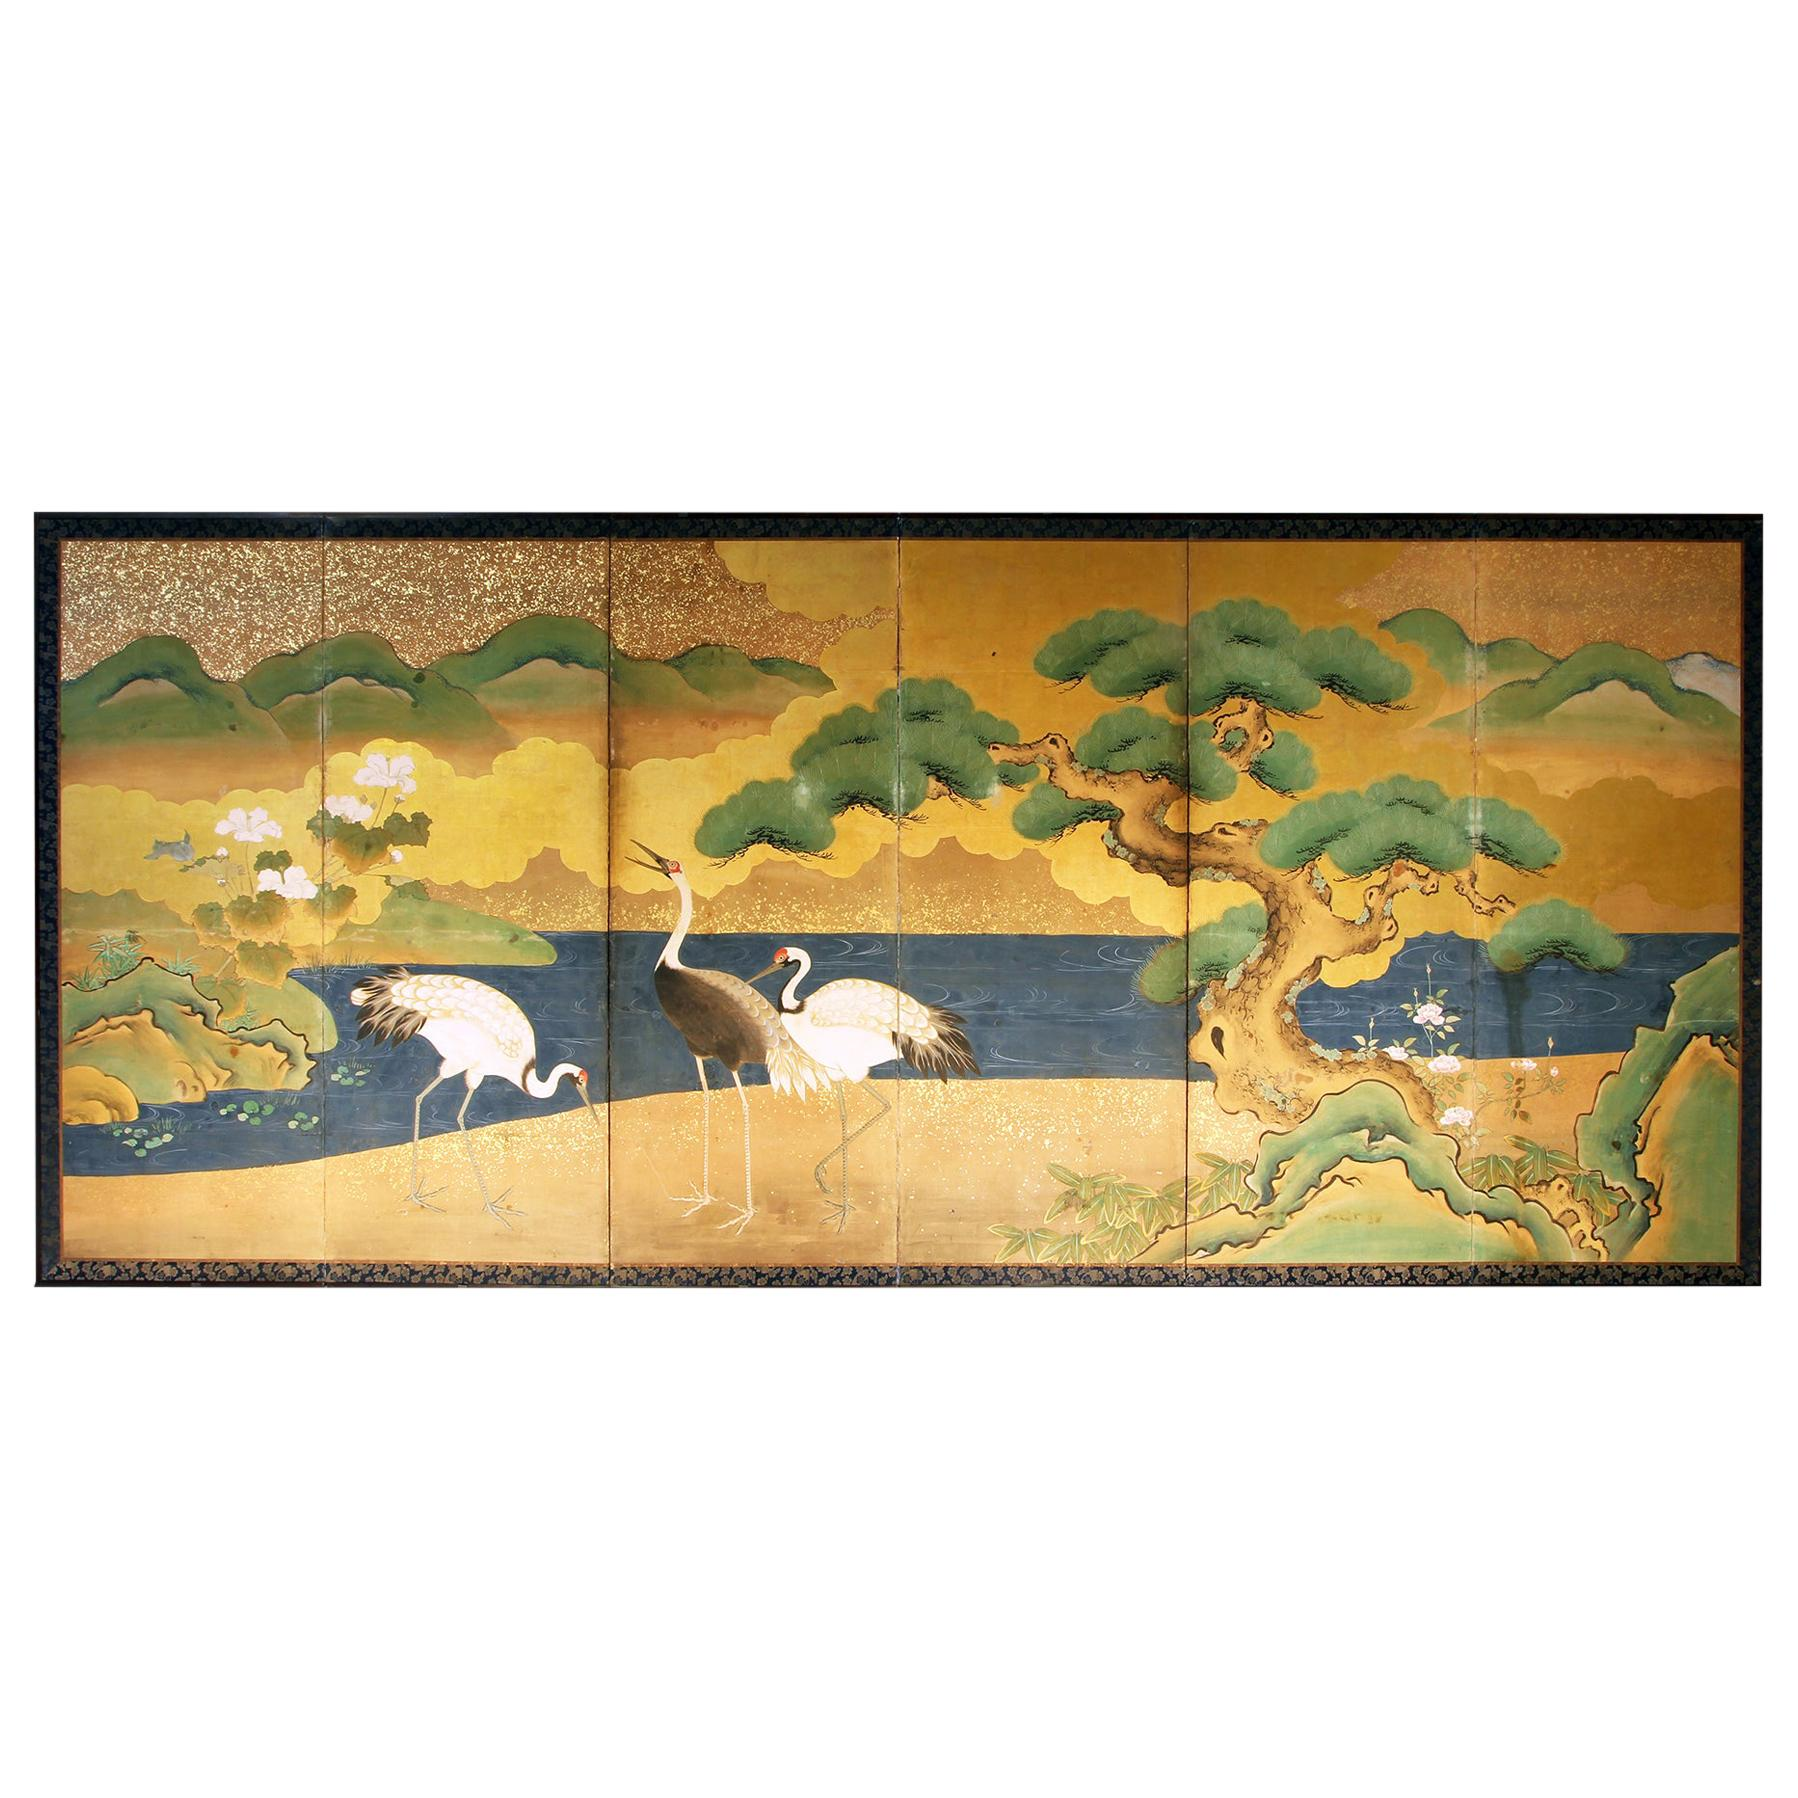 19th Century Japanese Landscape Folding Screen Rice Paper and Gold Leaf